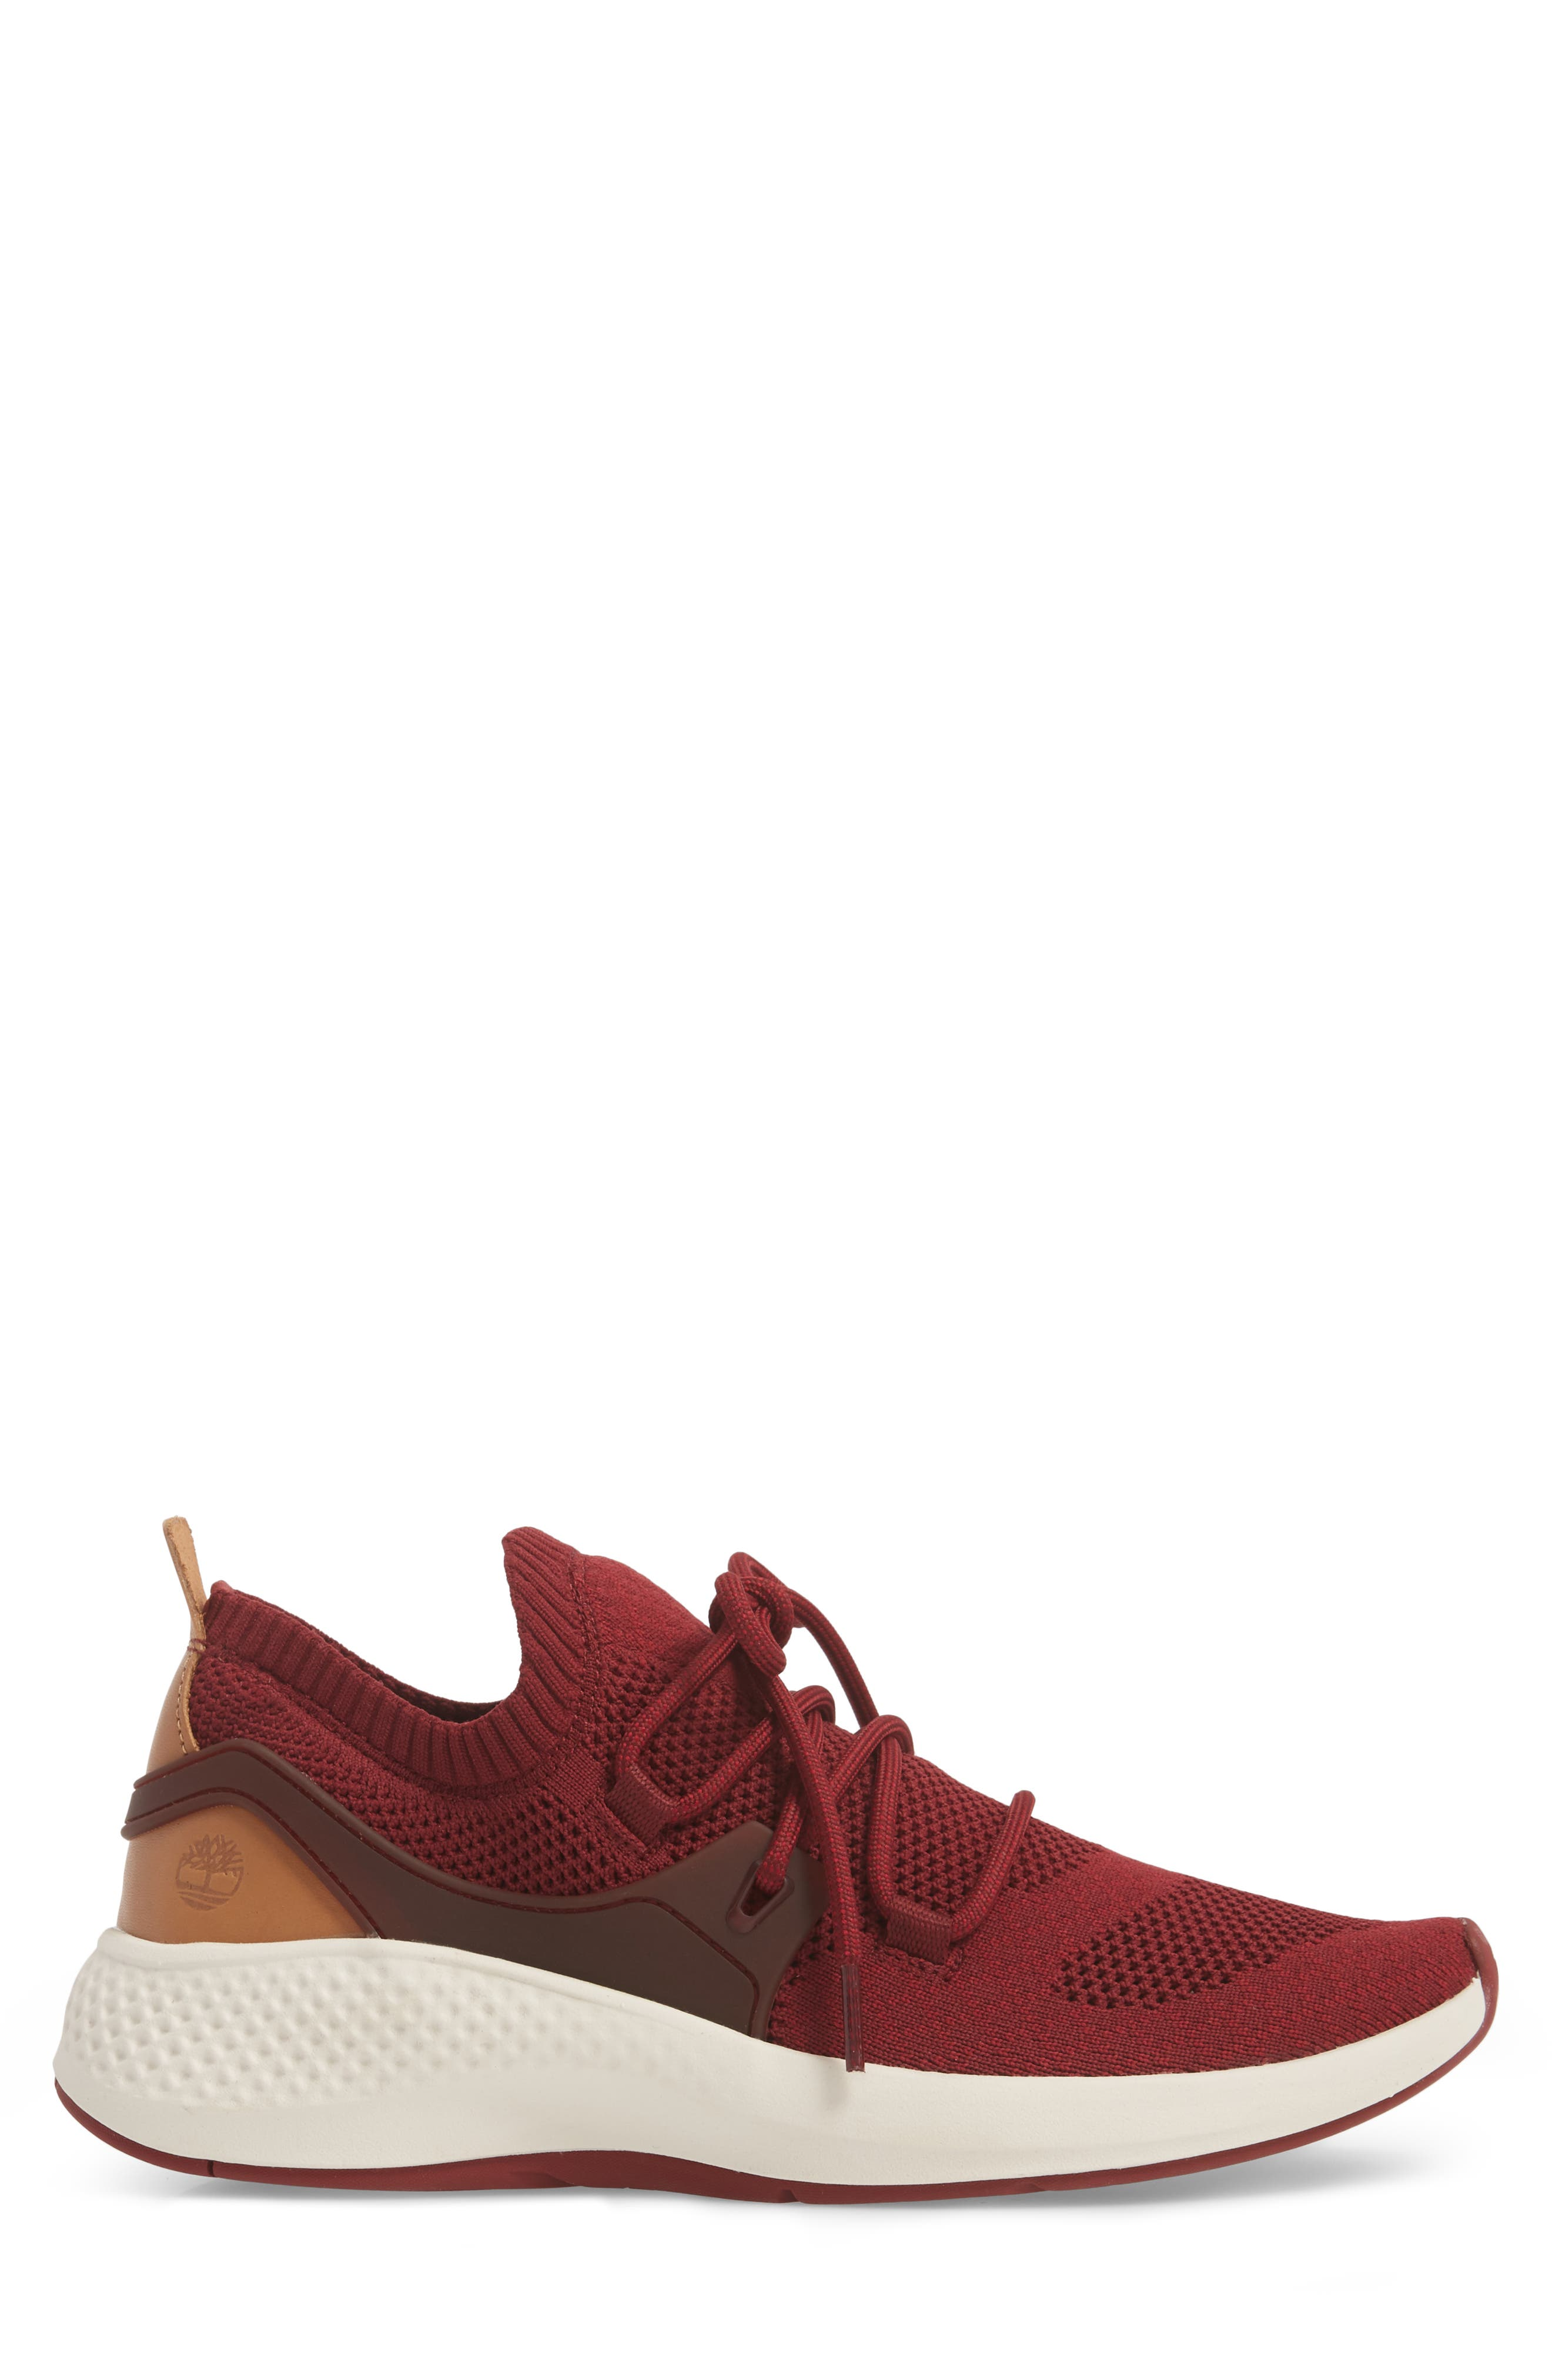 FlyRoam Sneaker,                             Alternate thumbnail 3, color,                             POMEGRANATE LEATHER